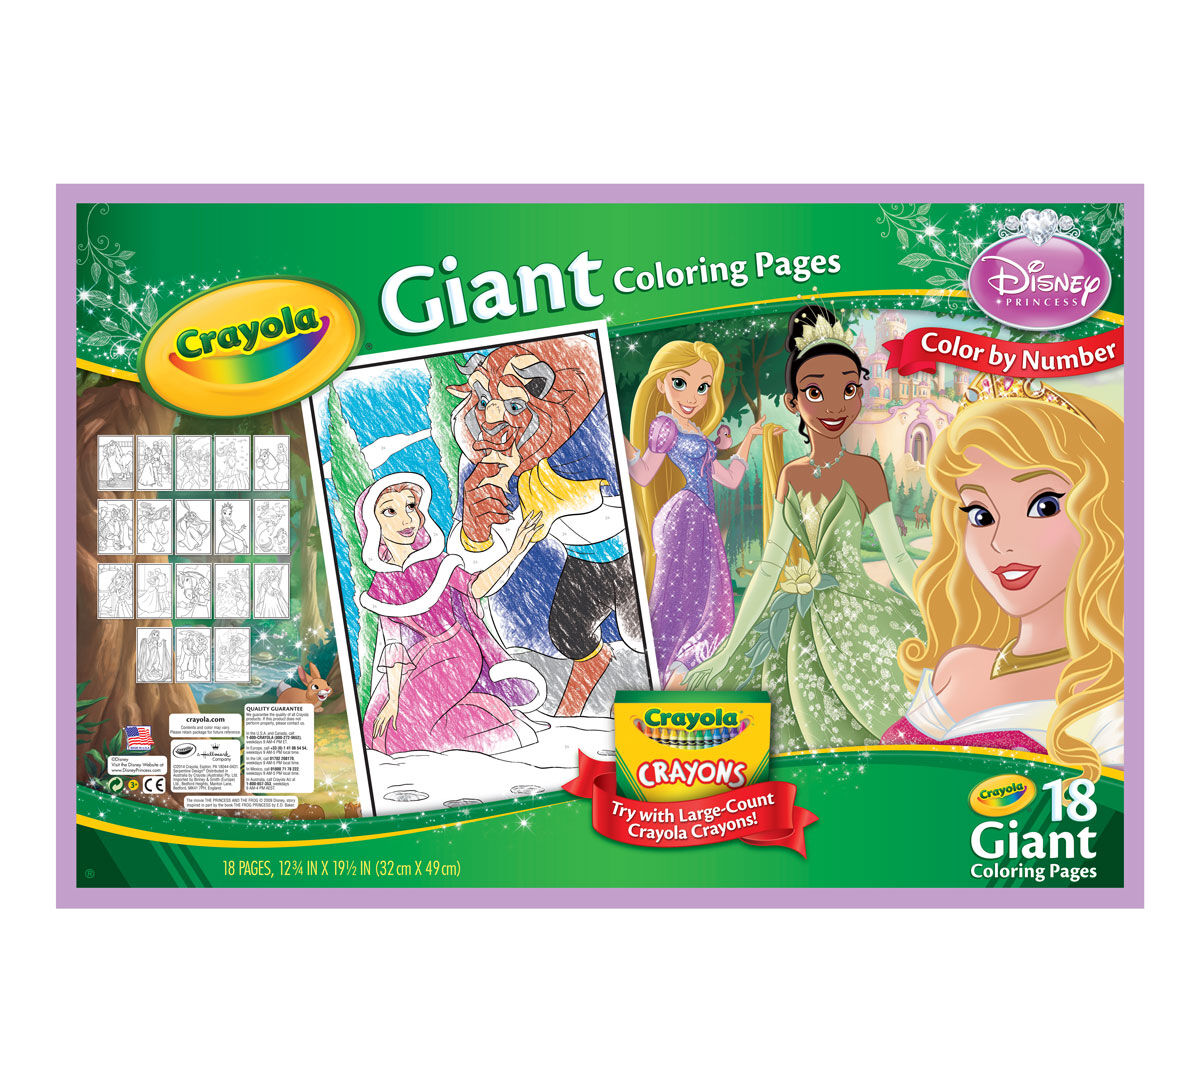 Giant Coloring Pages